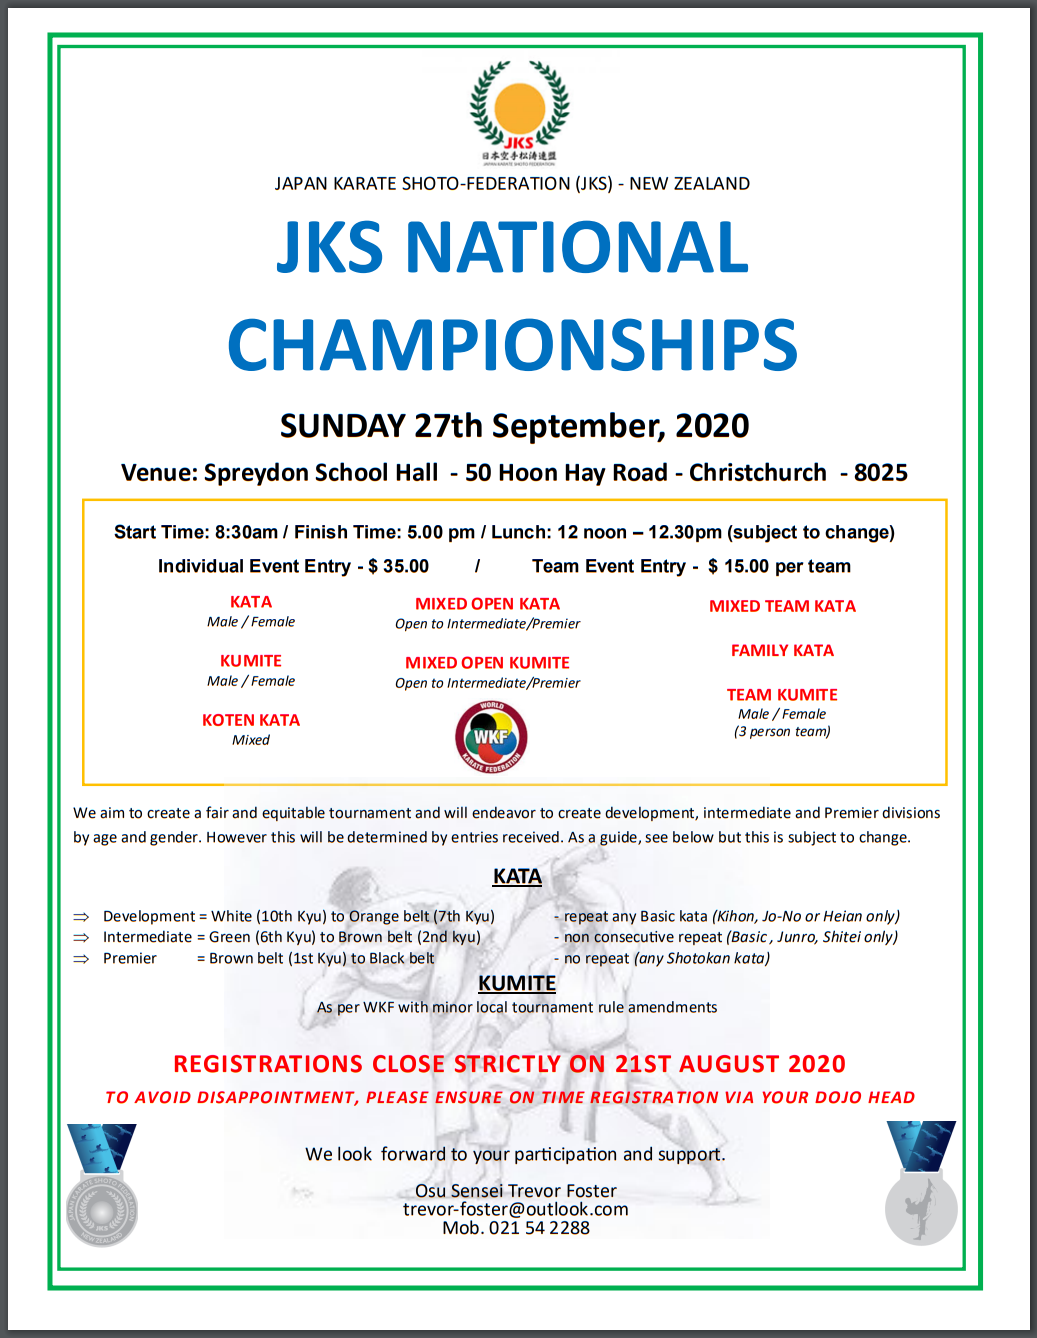 JKS National Championships